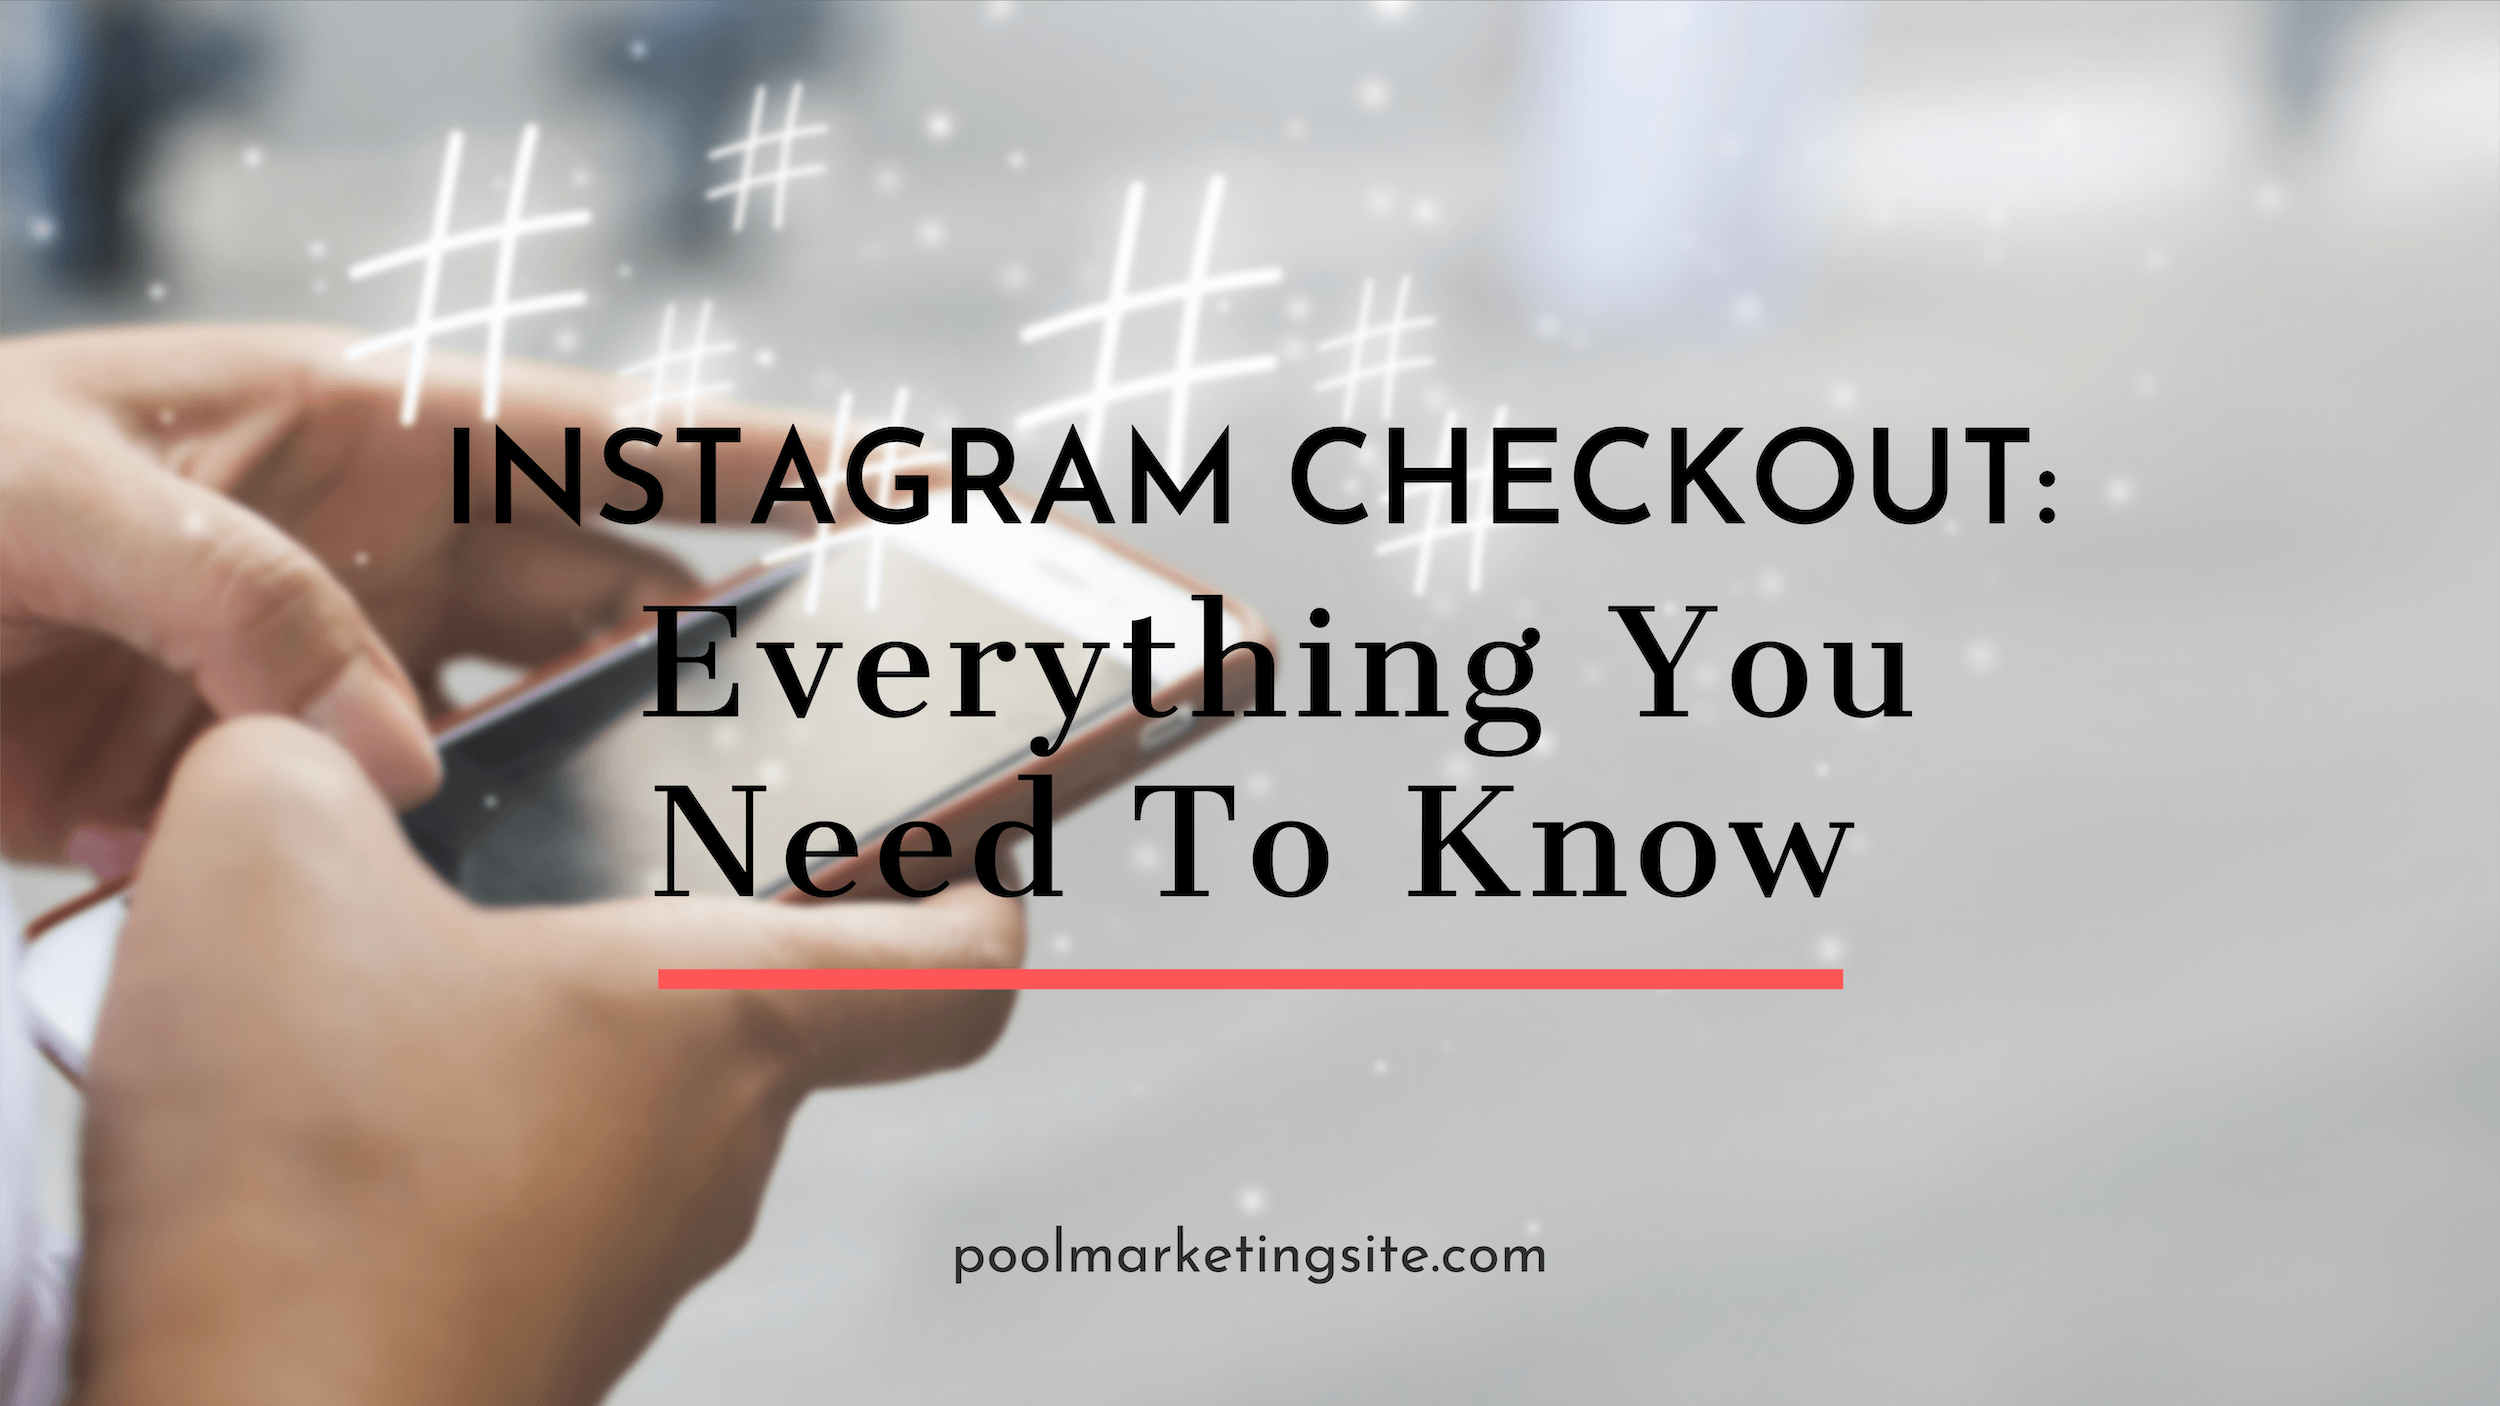 Instagram Checkout: Everything You Need to Know